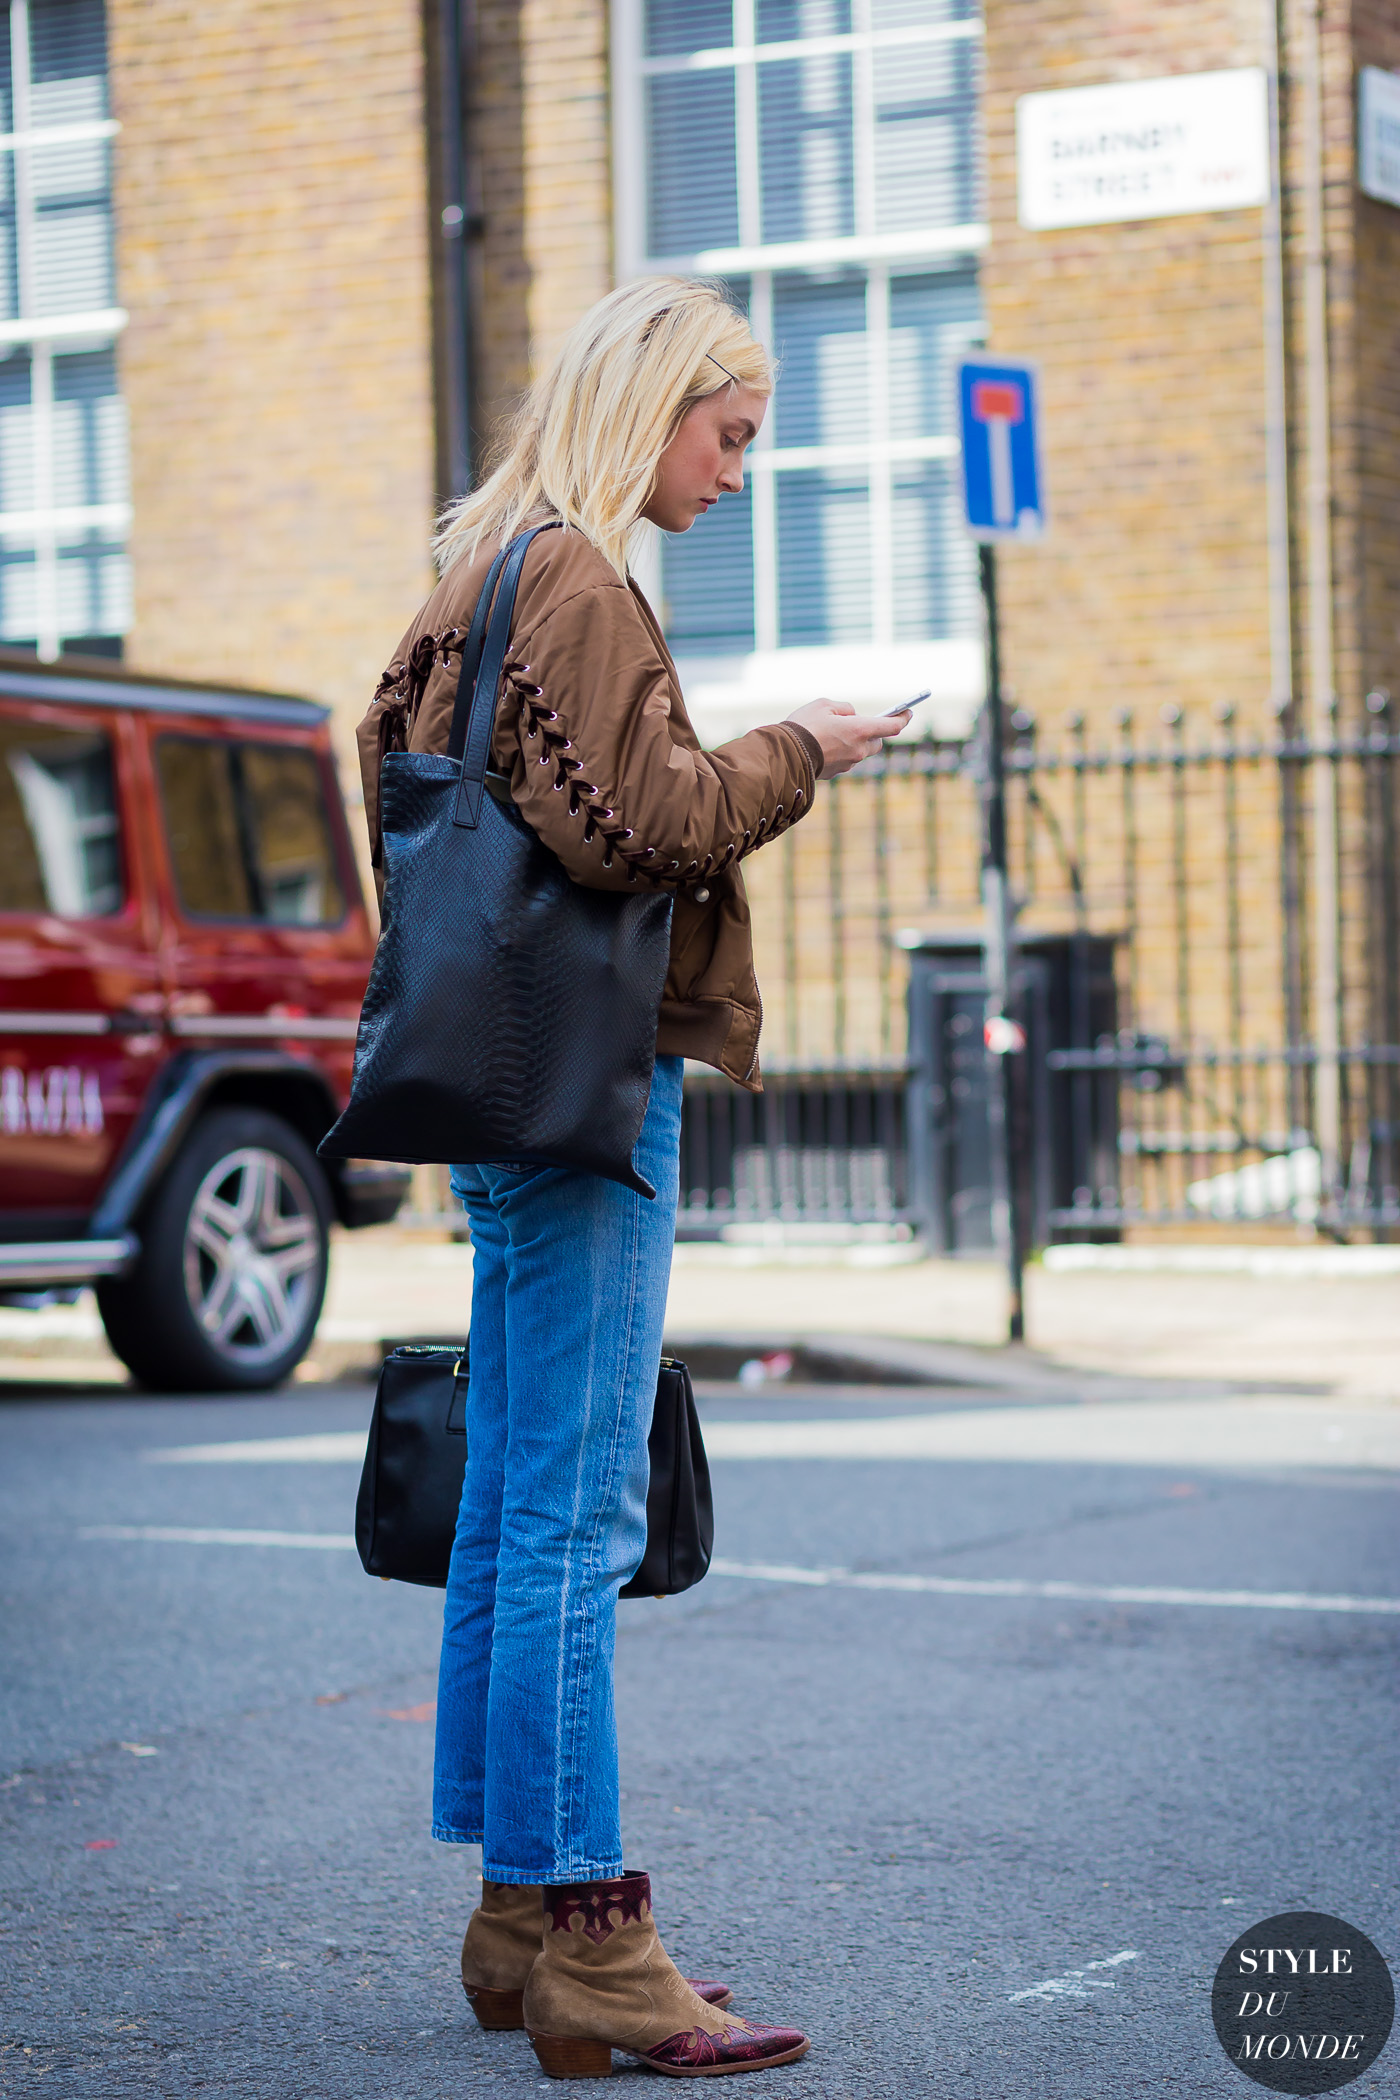 Frances Coombe Street Style Street Fashion Streetsnaps by STYLEDUMONDE Street Style Fashion Photography